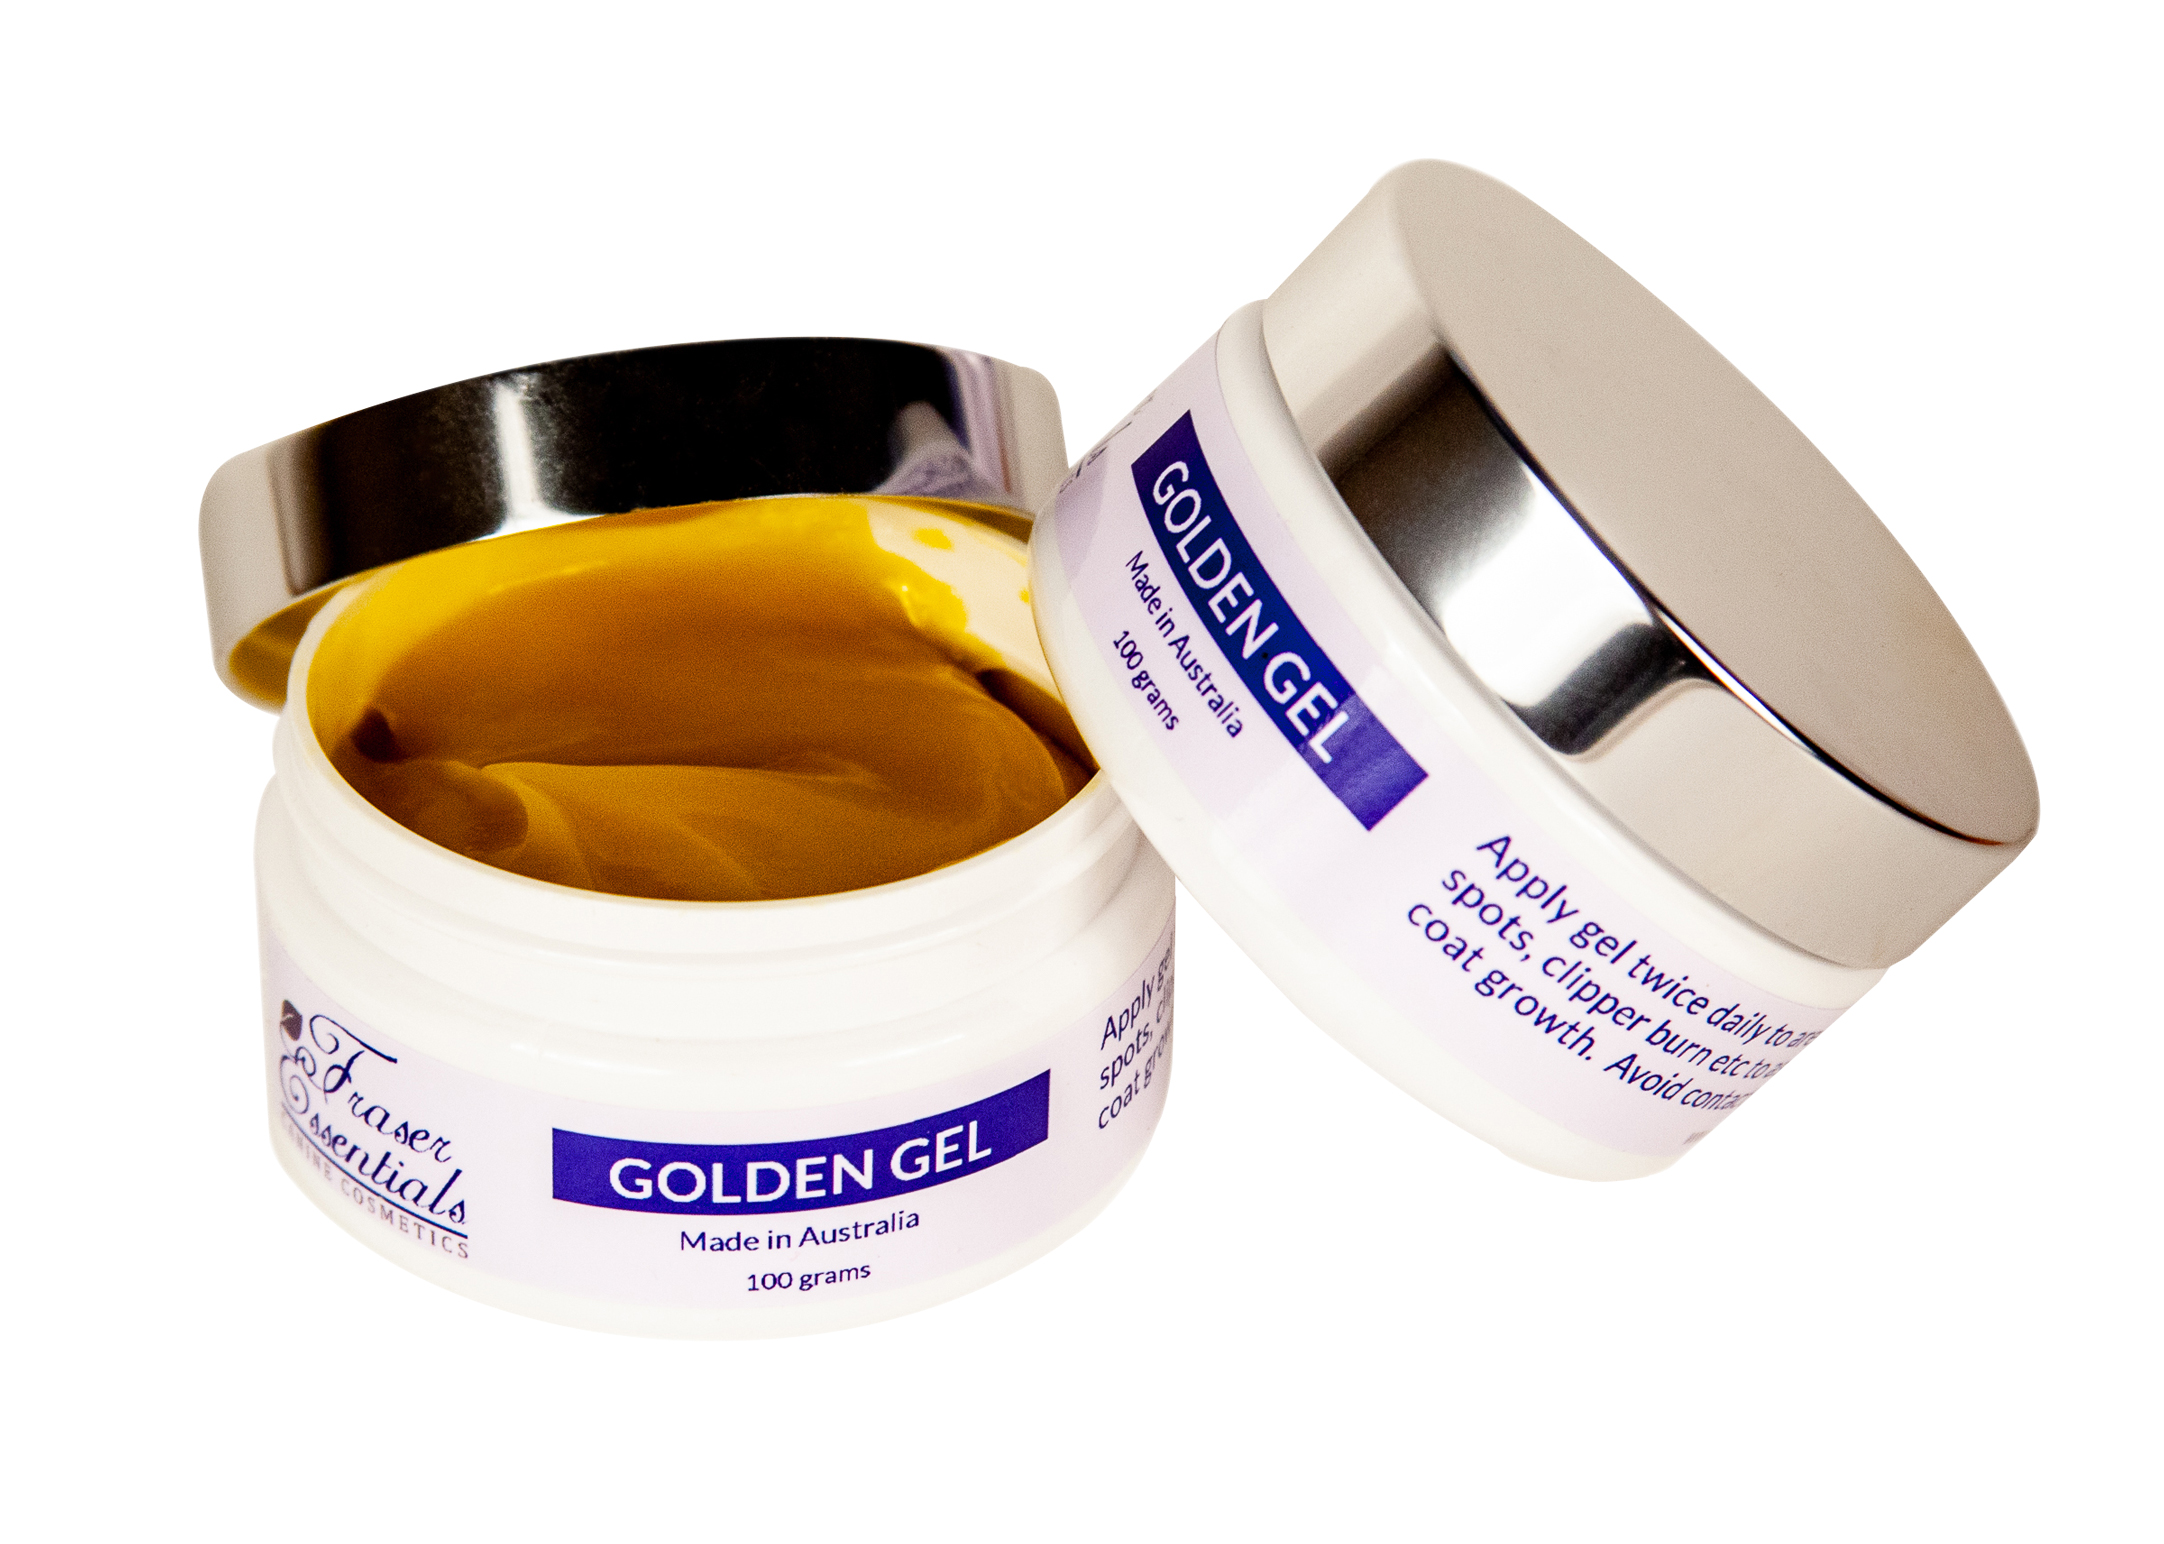 Fraser Essentials Golden Gel 100g Soothing Creme